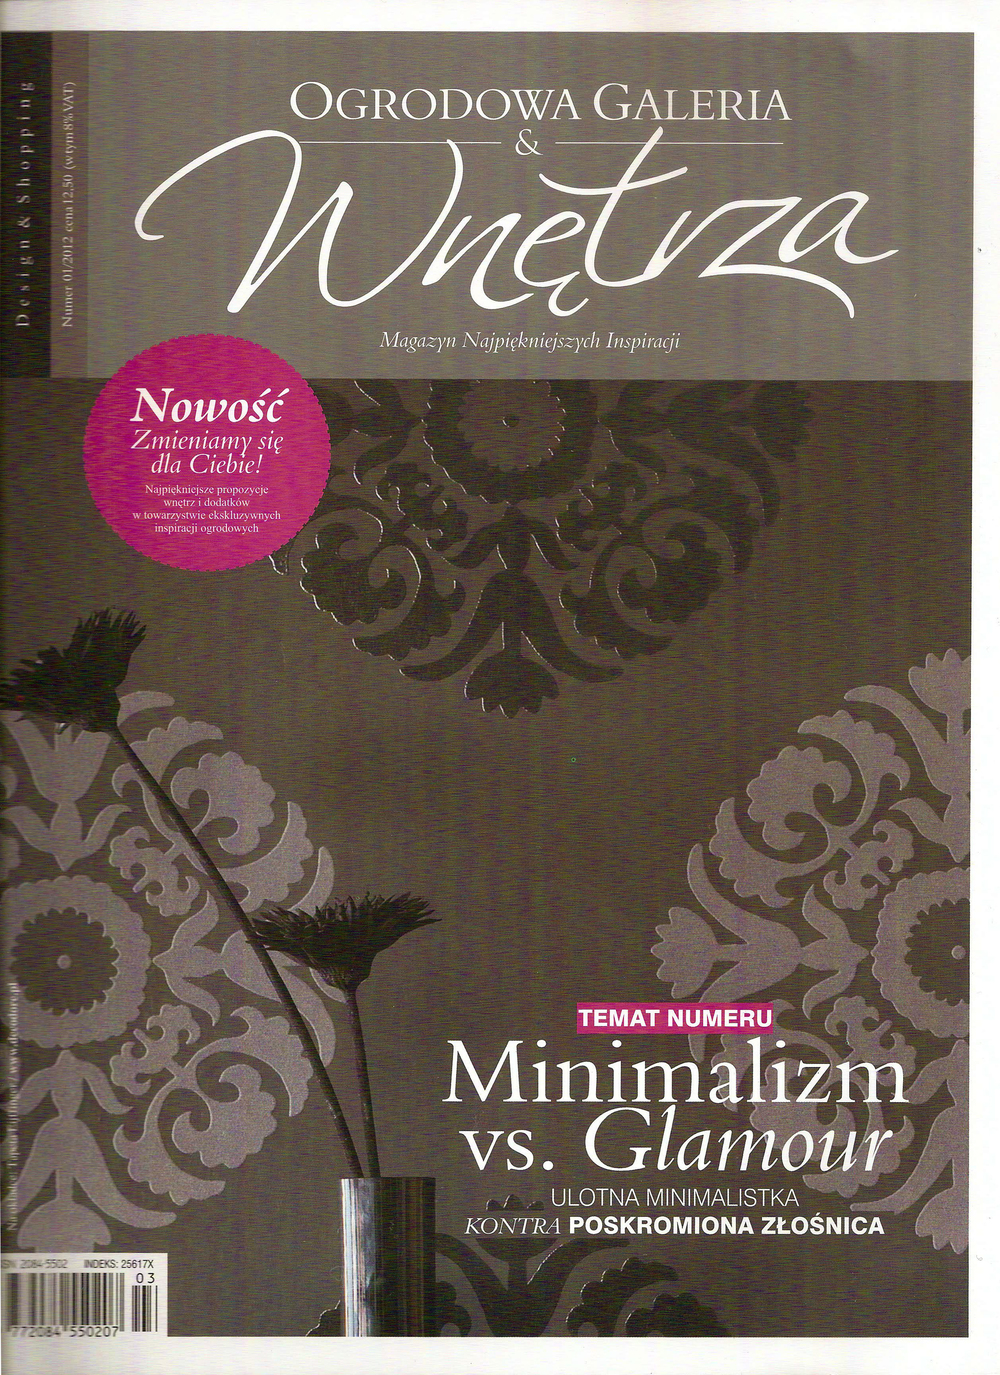 Winetrza Magazine